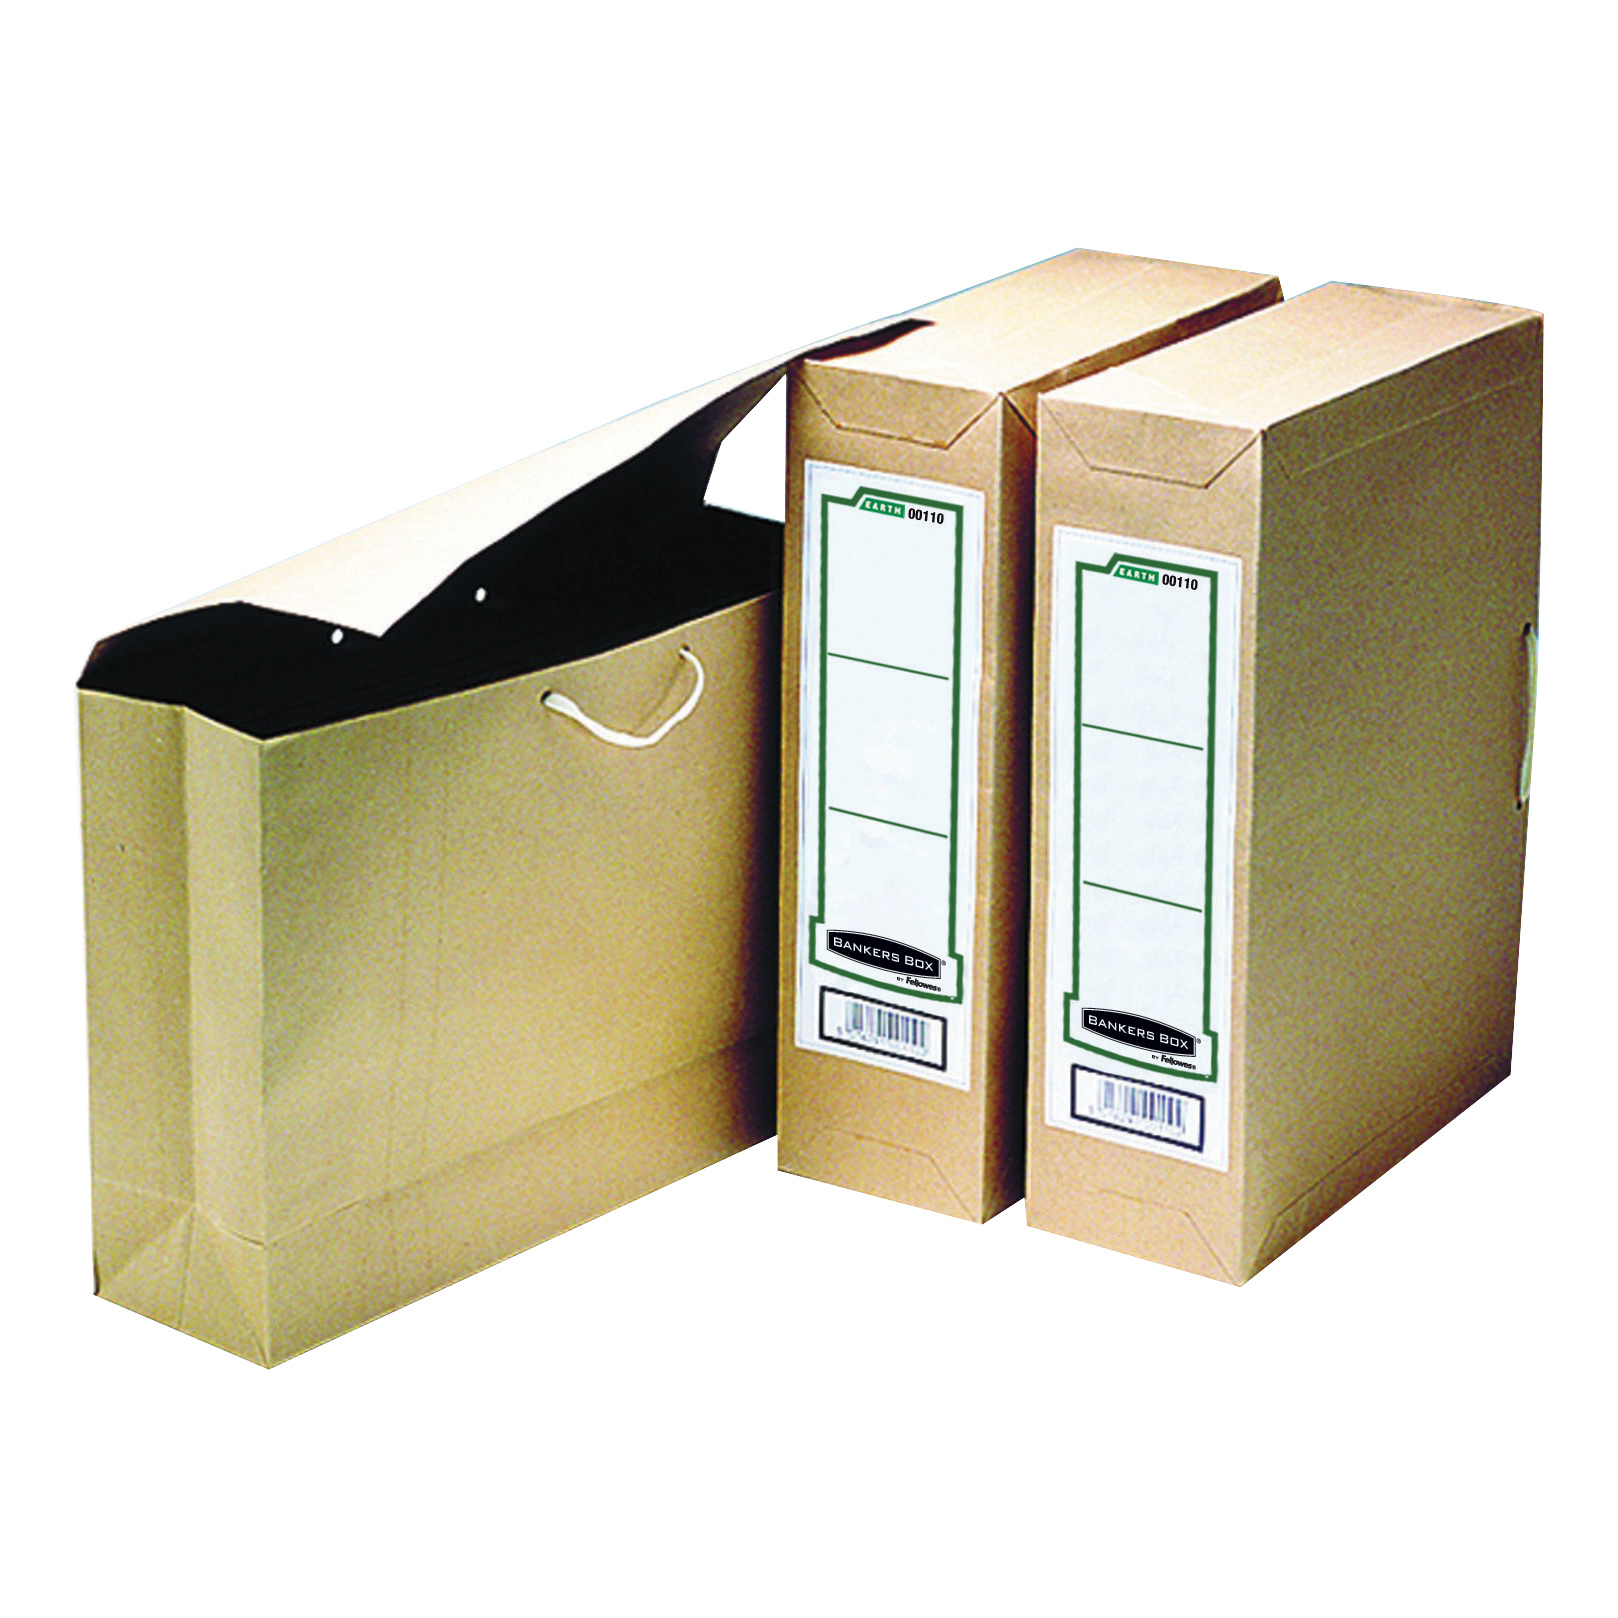 Storage Bags Bankers Box by Fellowes Basics Storage Bag File Foolscap W101xD254xH356mm Ref 00110 Pack 25